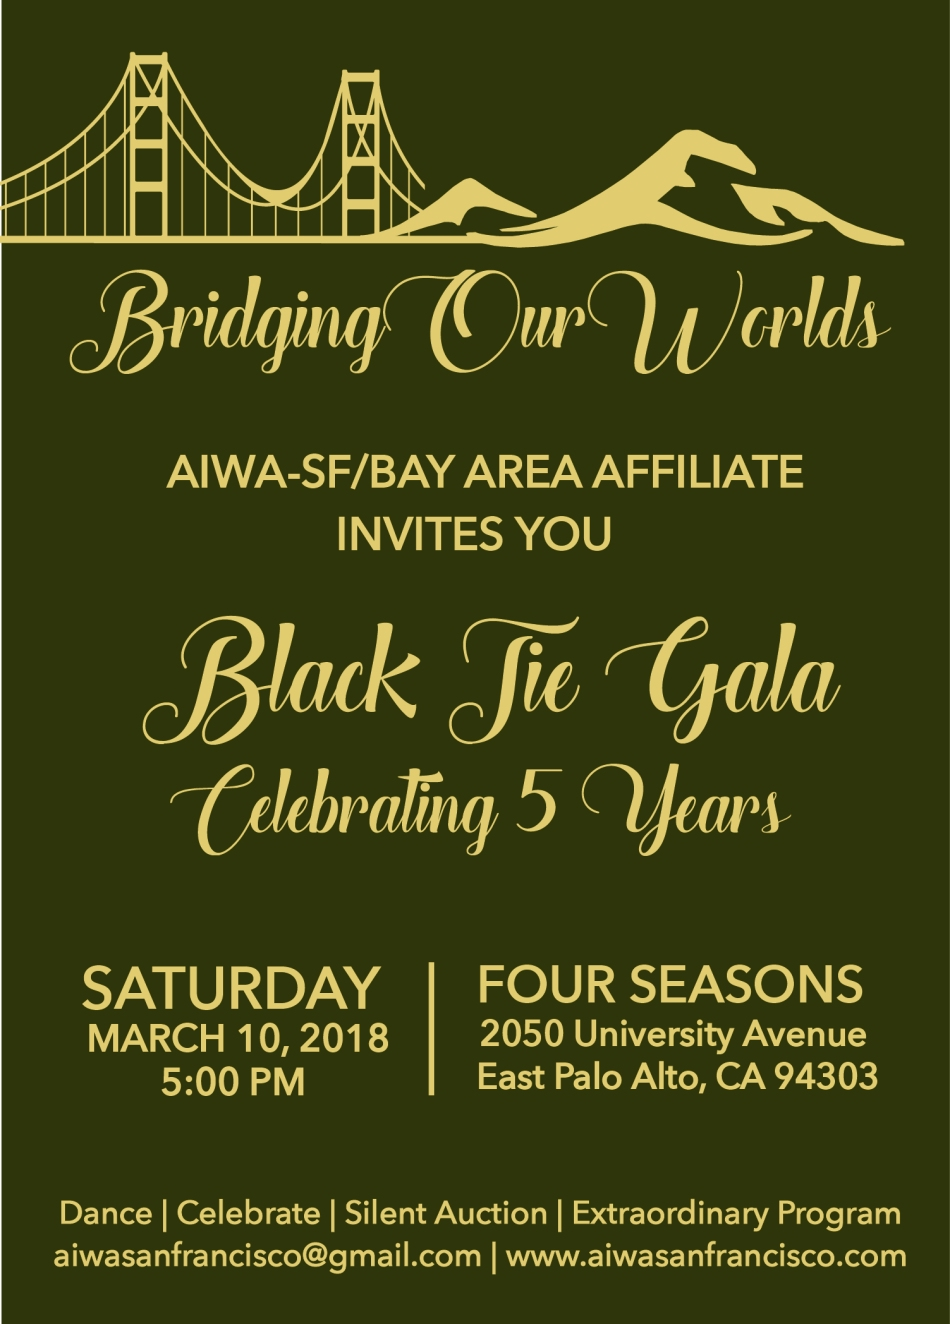 aiwa-gala-invitation